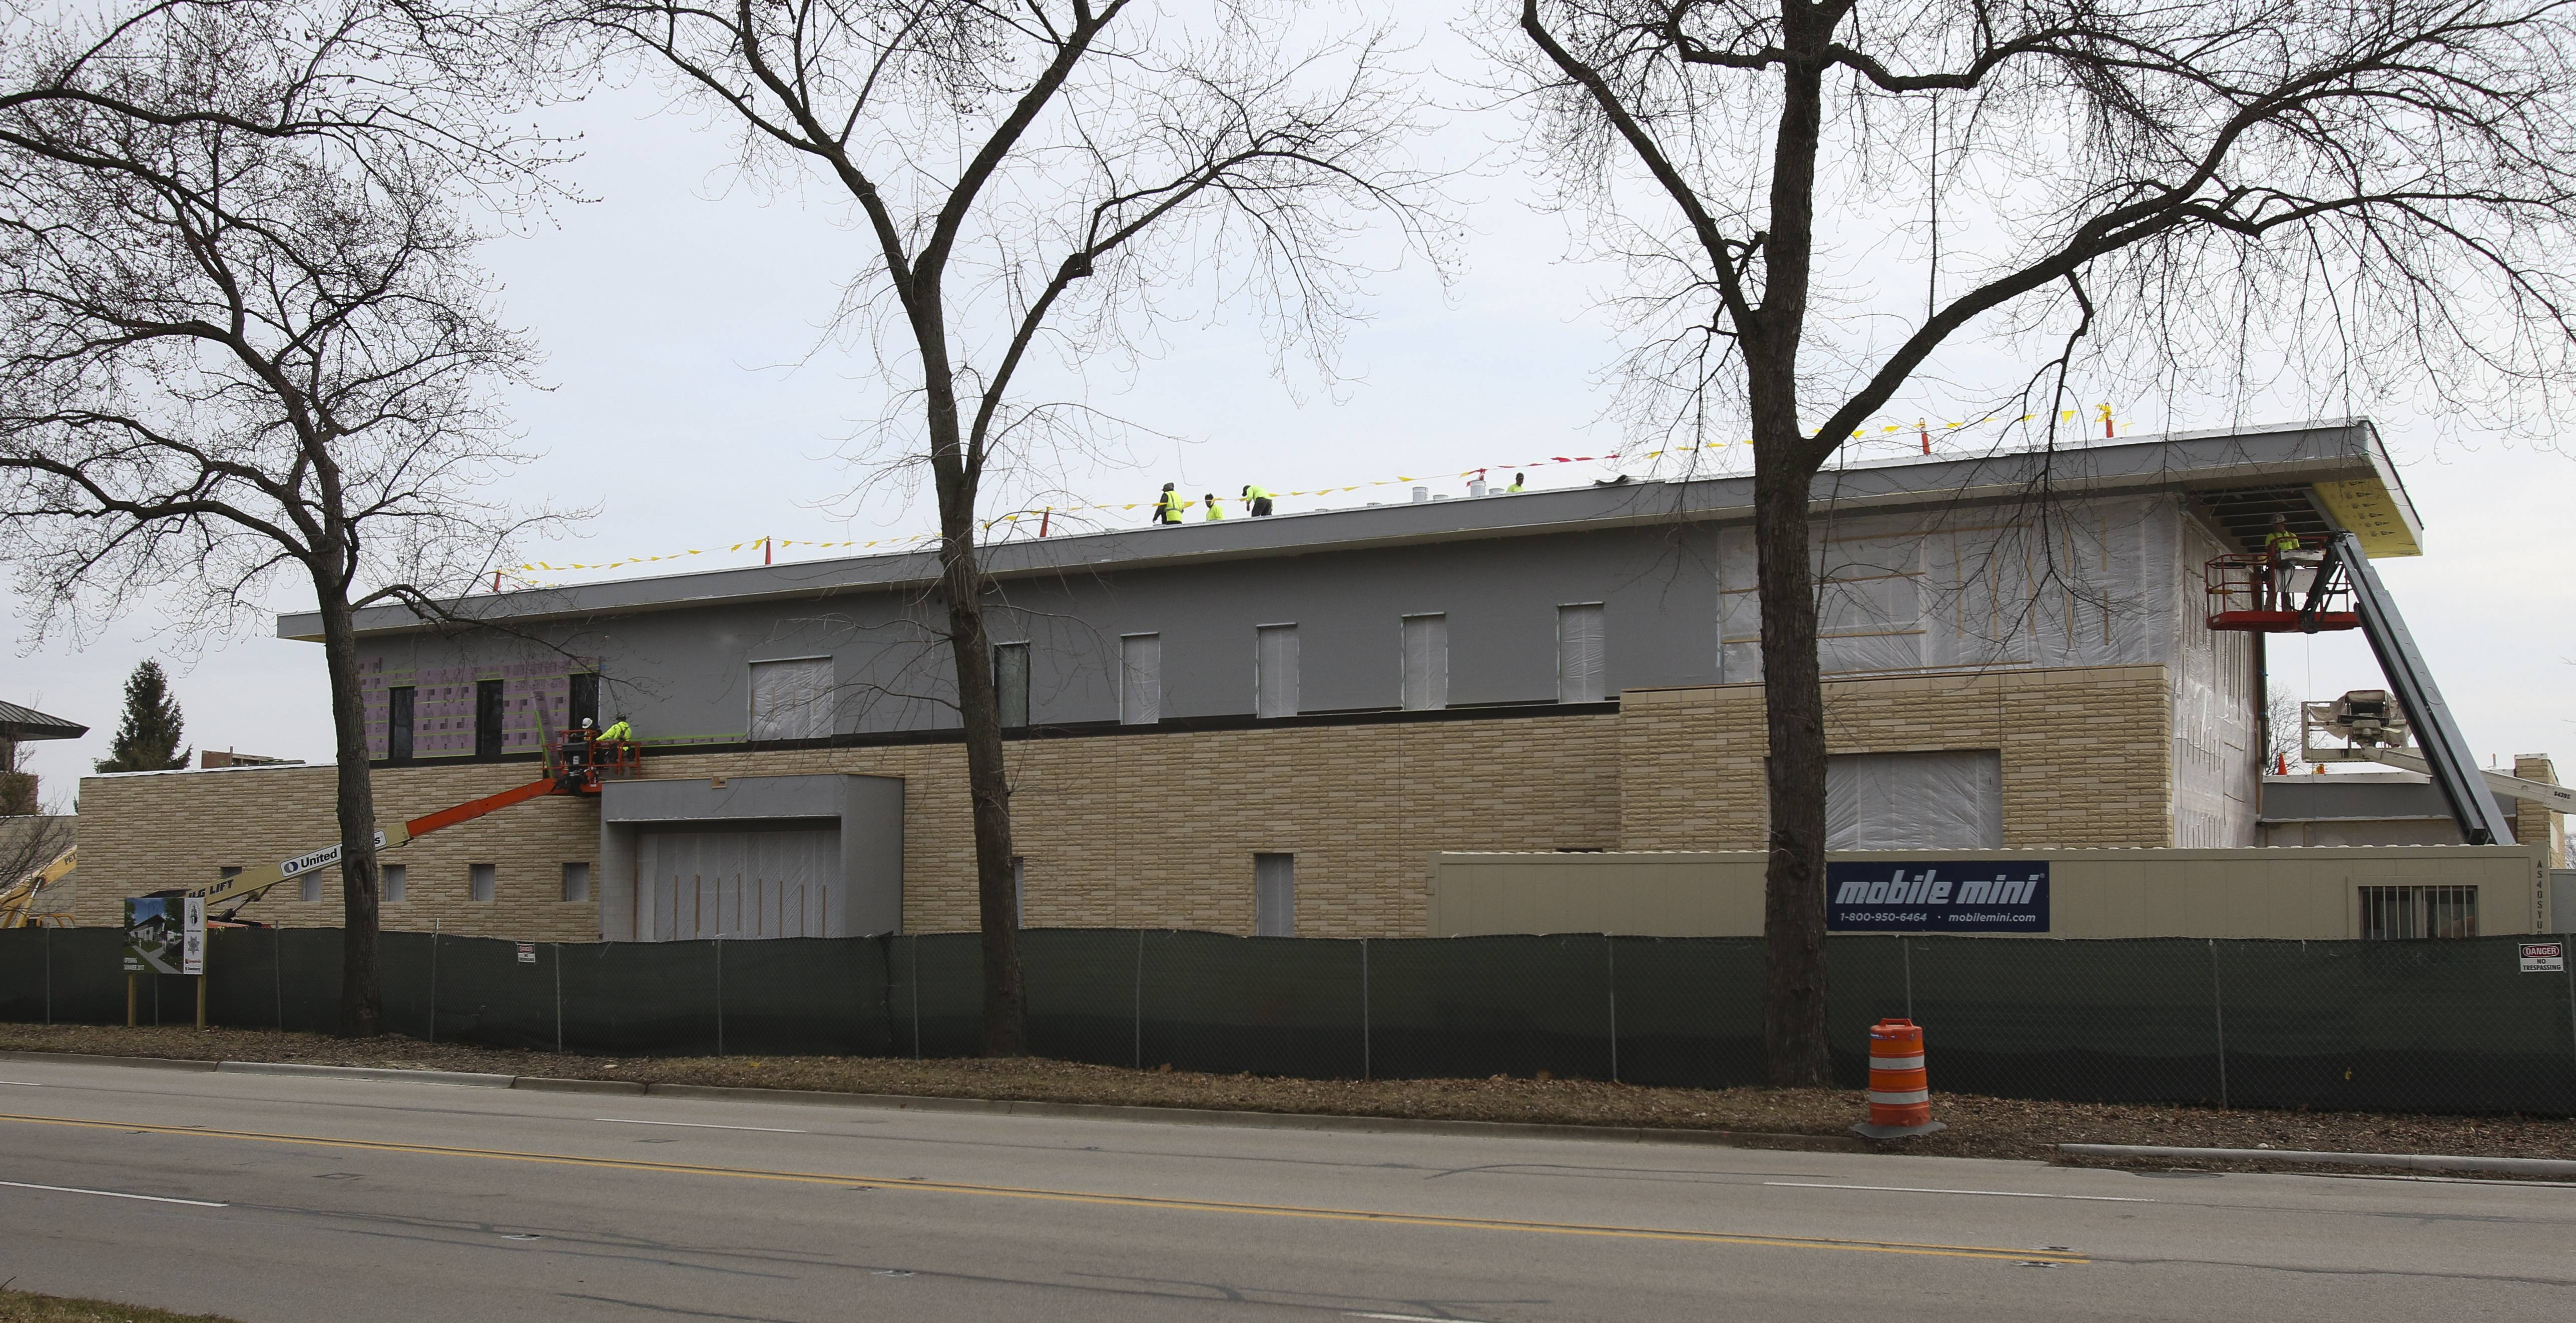 Construction of the $13.5 million Glen Ellyn police station is two months ahead of schedule and is expected to be finished in July.